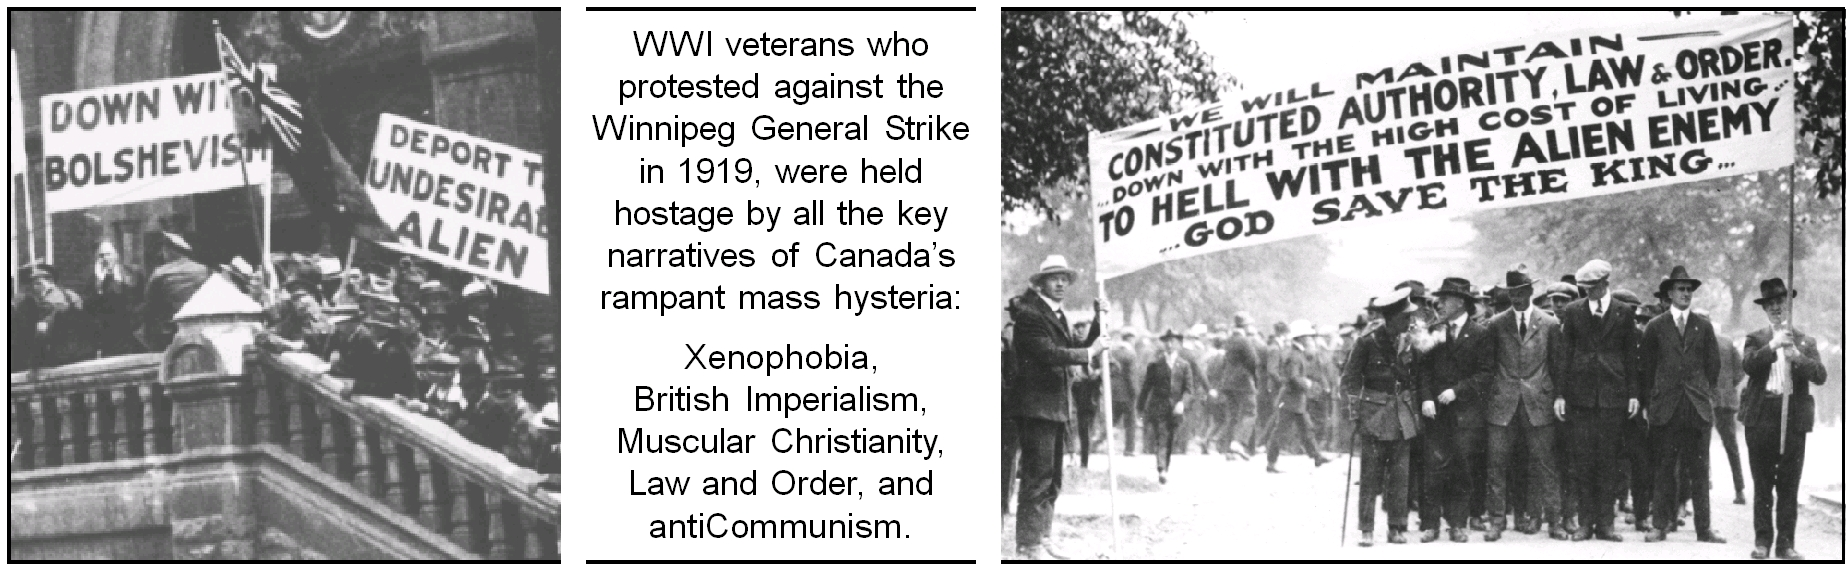 WWI veterans protesting the Winnipeg General Strike